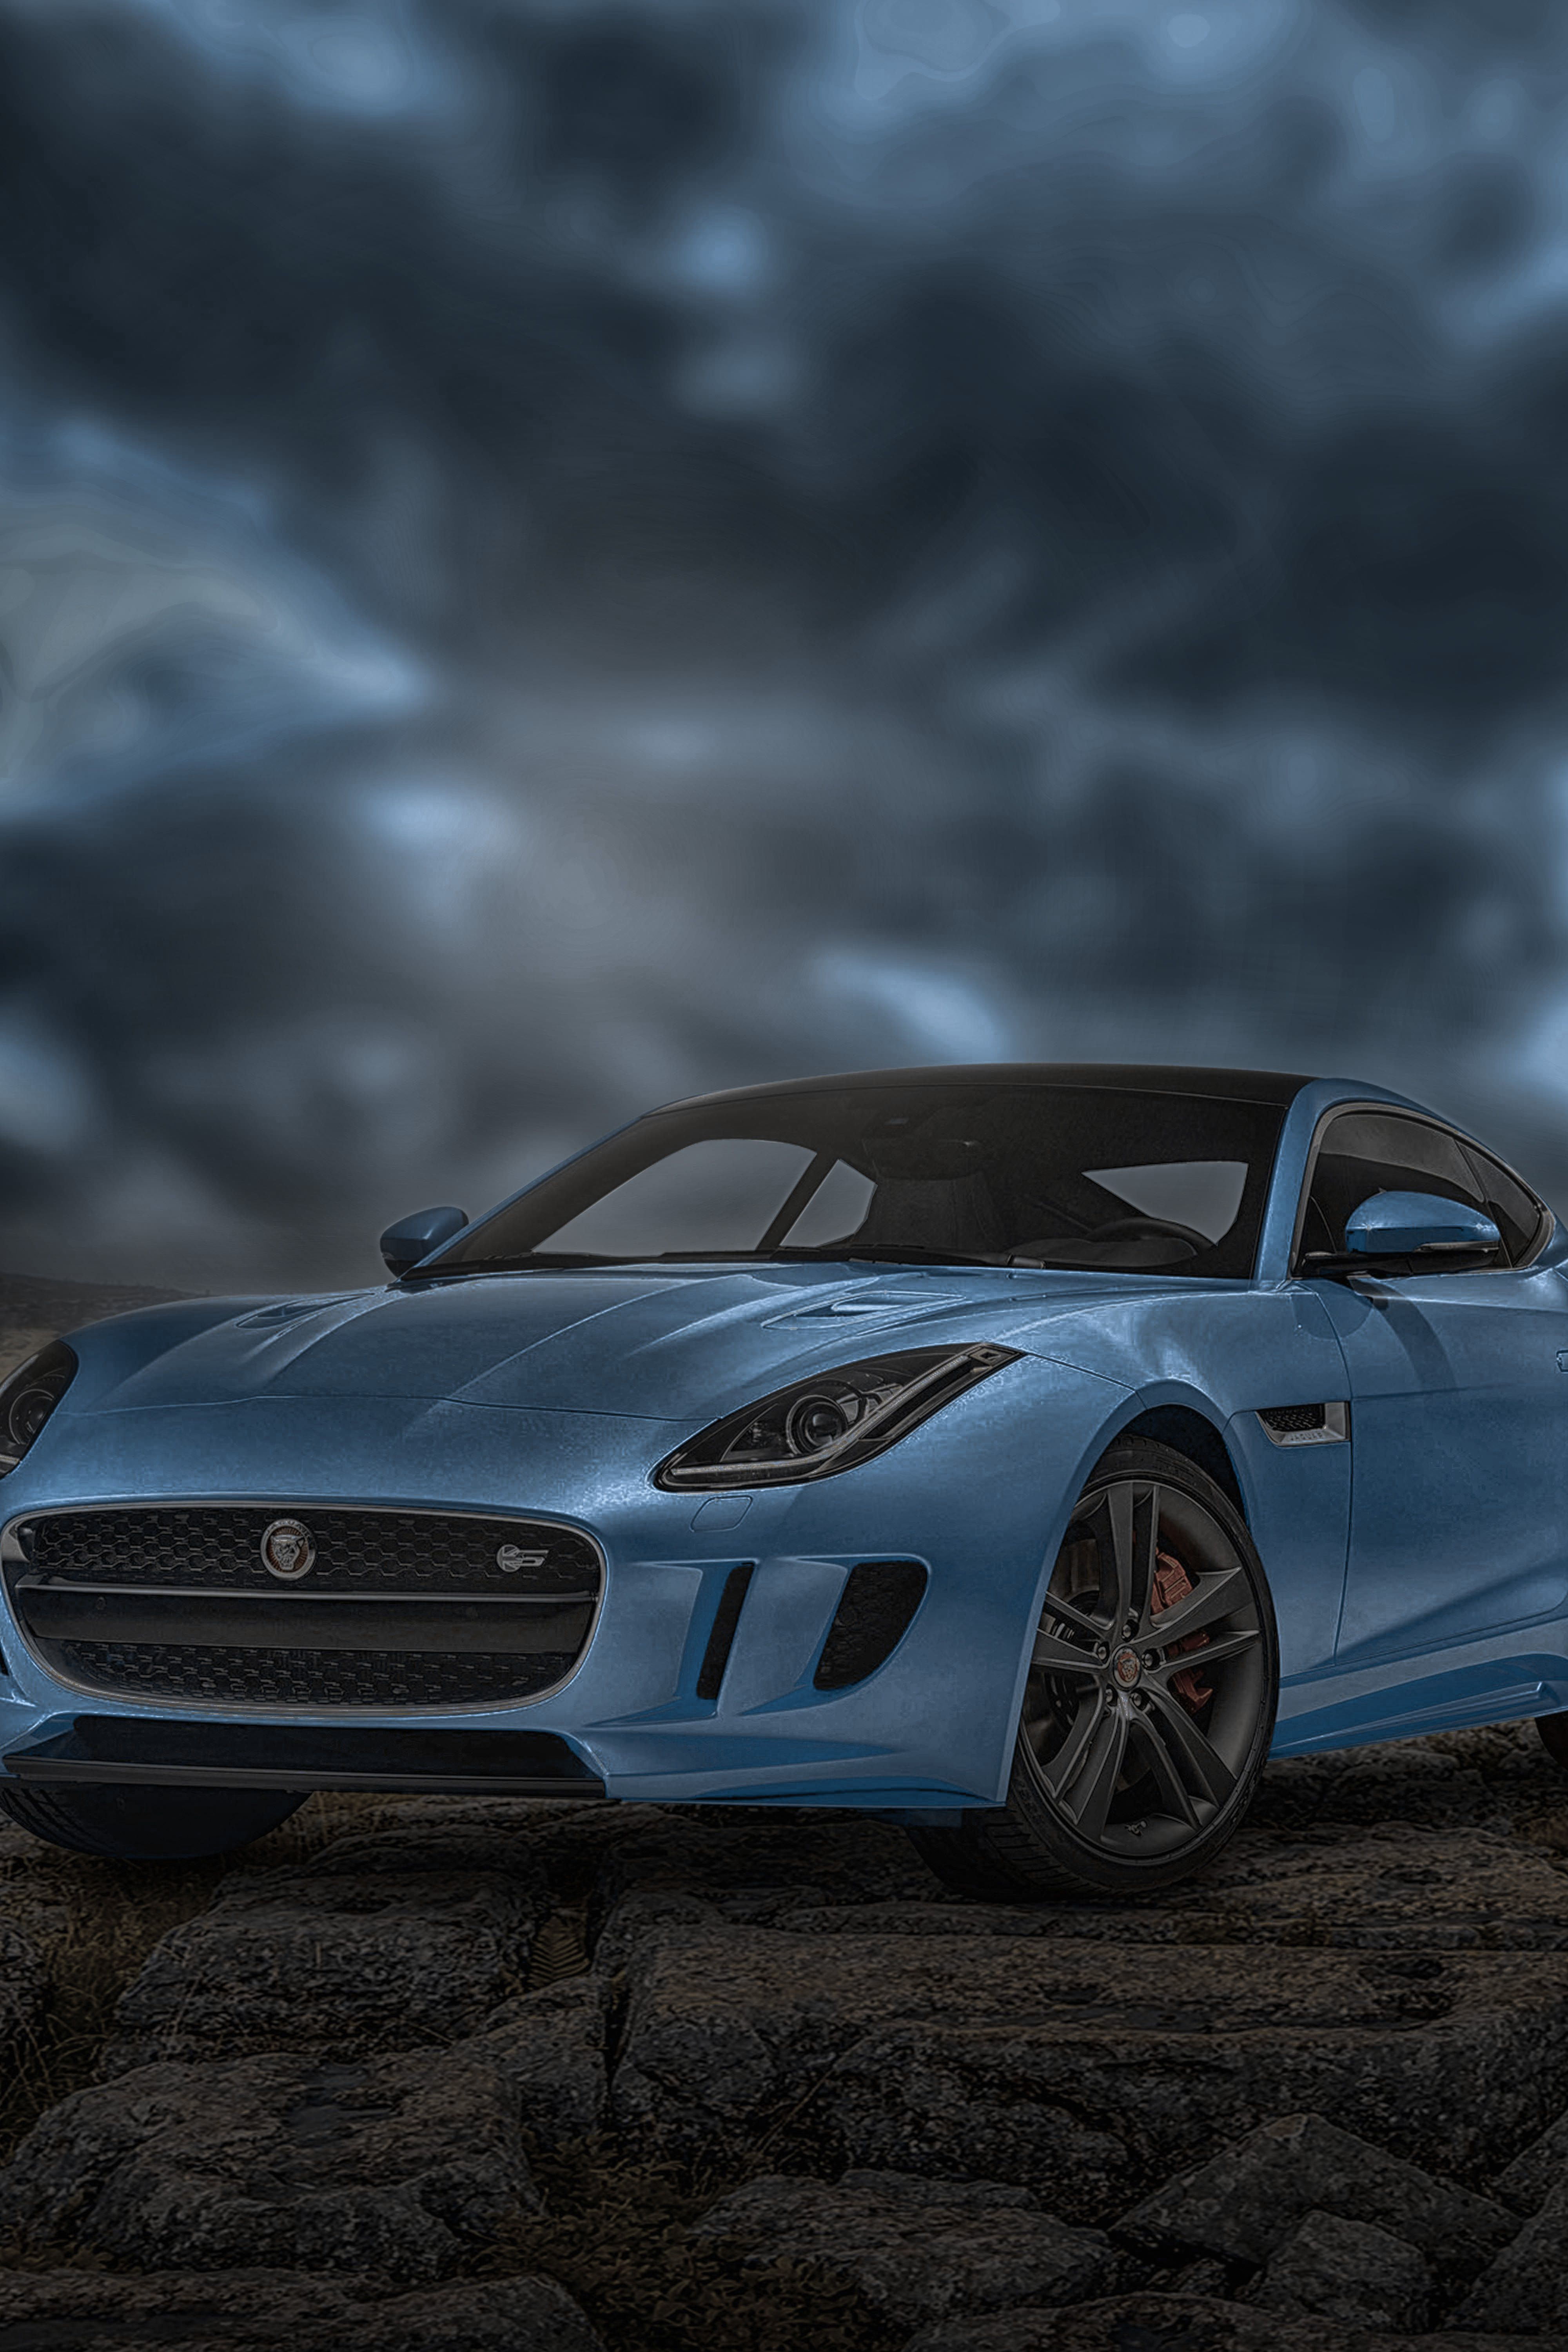 Car Cb Background Stock In High Resolution Car Backgrounds Background For Photography Car